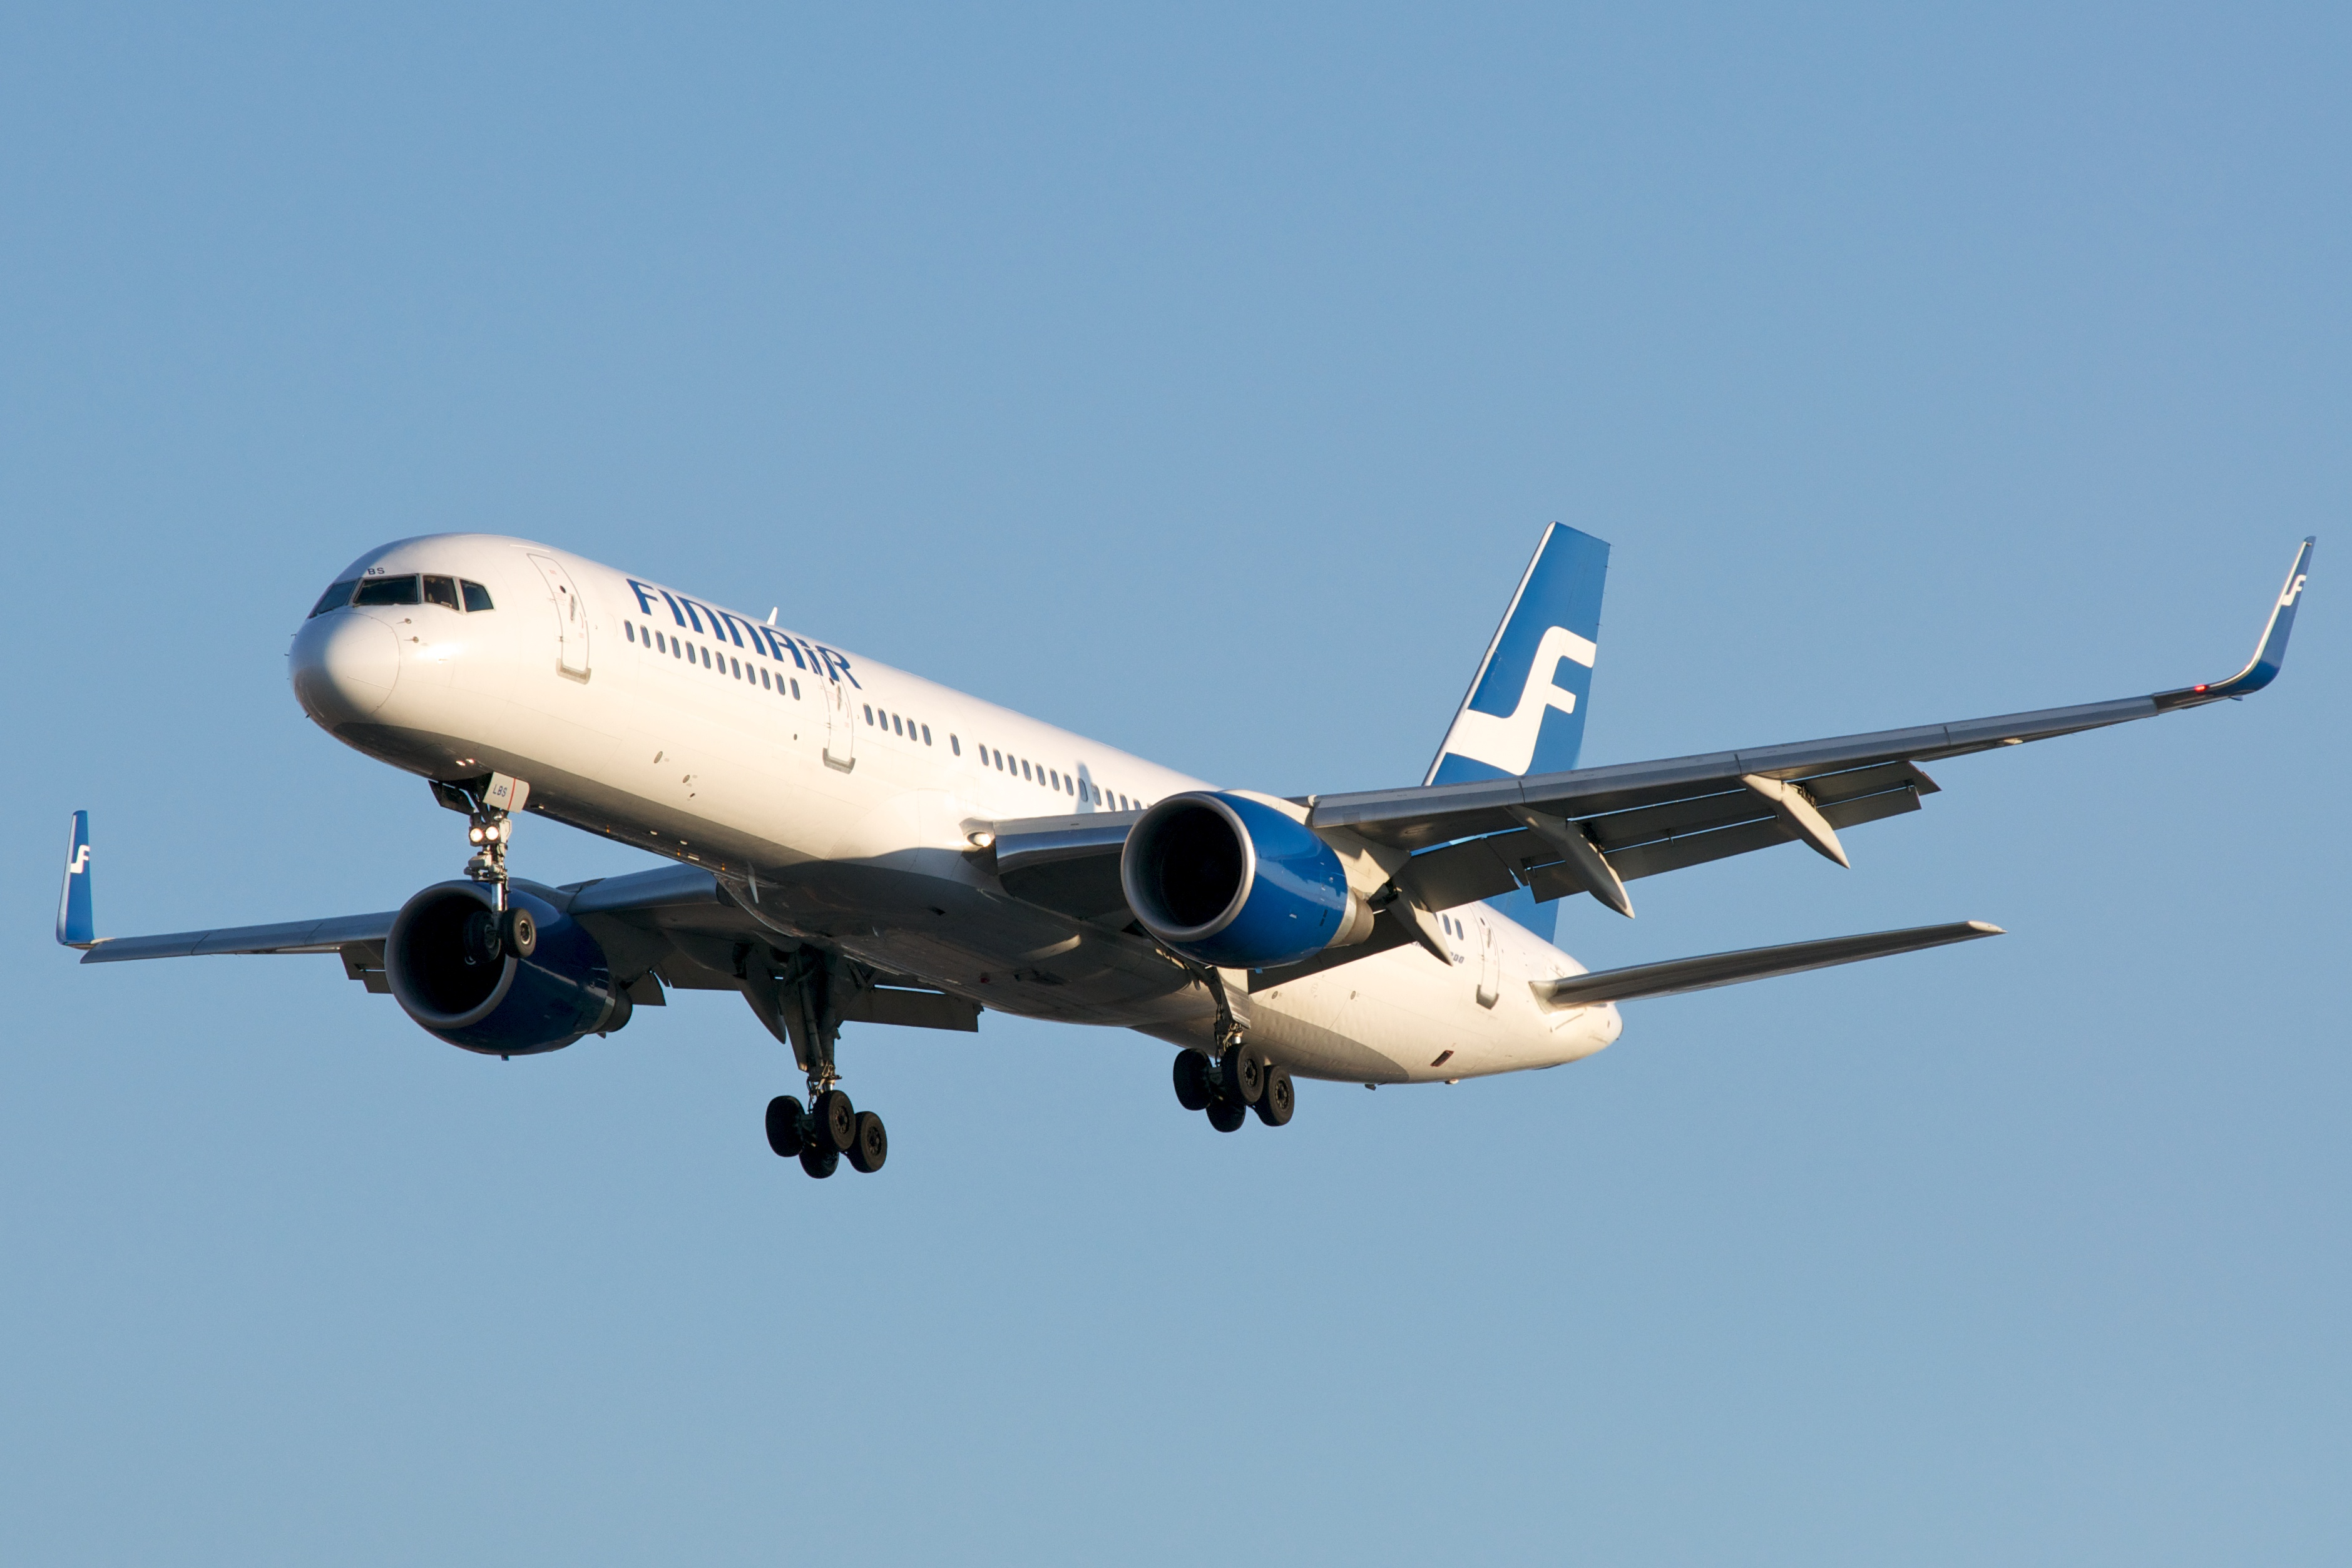 https://i2.wp.com/upload.wikimedia.org/wikipedia/commons/a/a8/Finnair_B757-200_OH-LBS_at_CYYZ_20110605.jpg